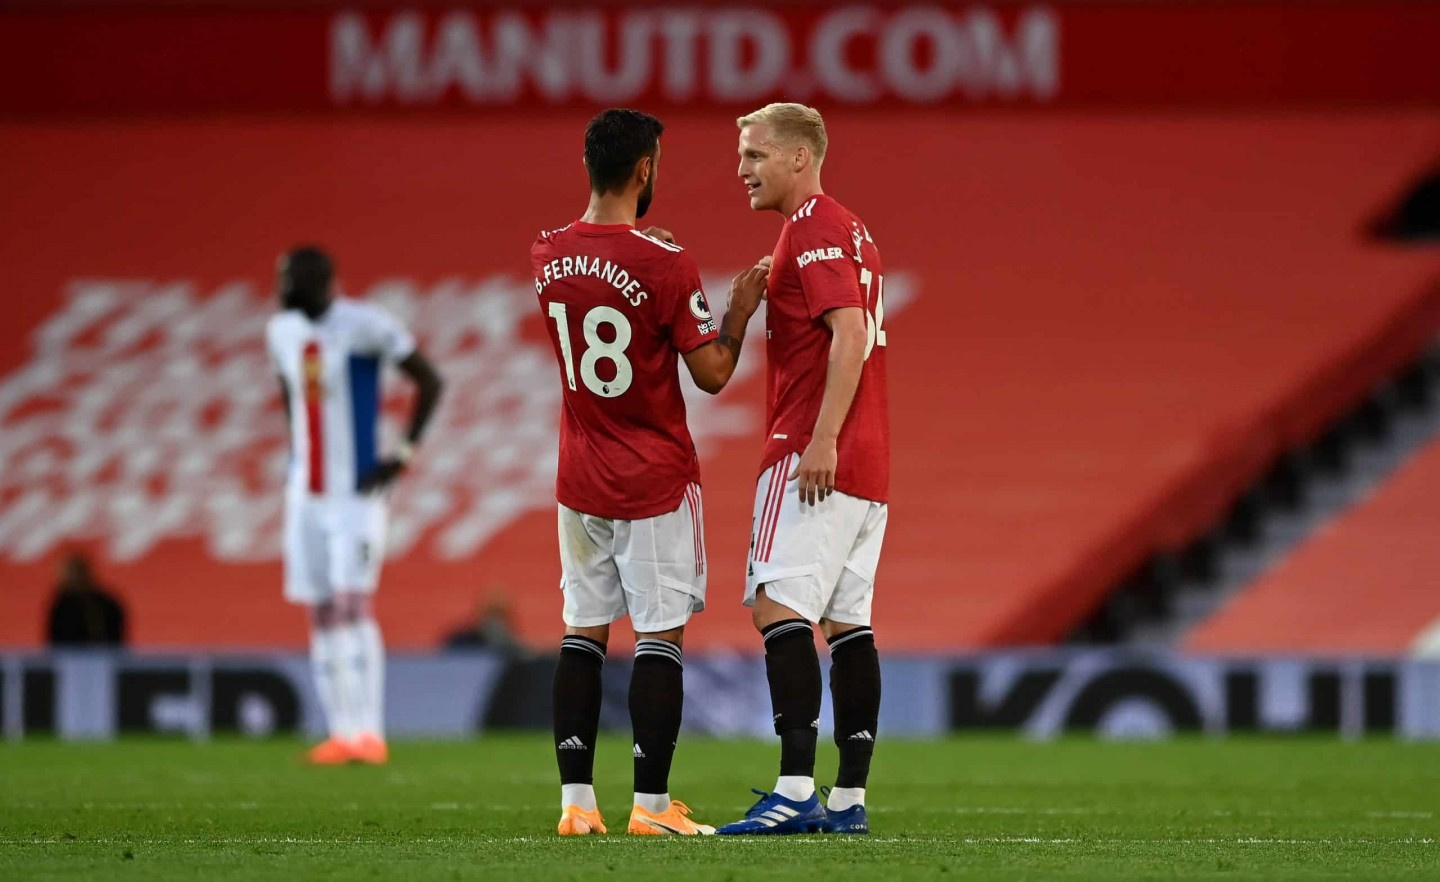 What's Van de Beek's best position for Man United?